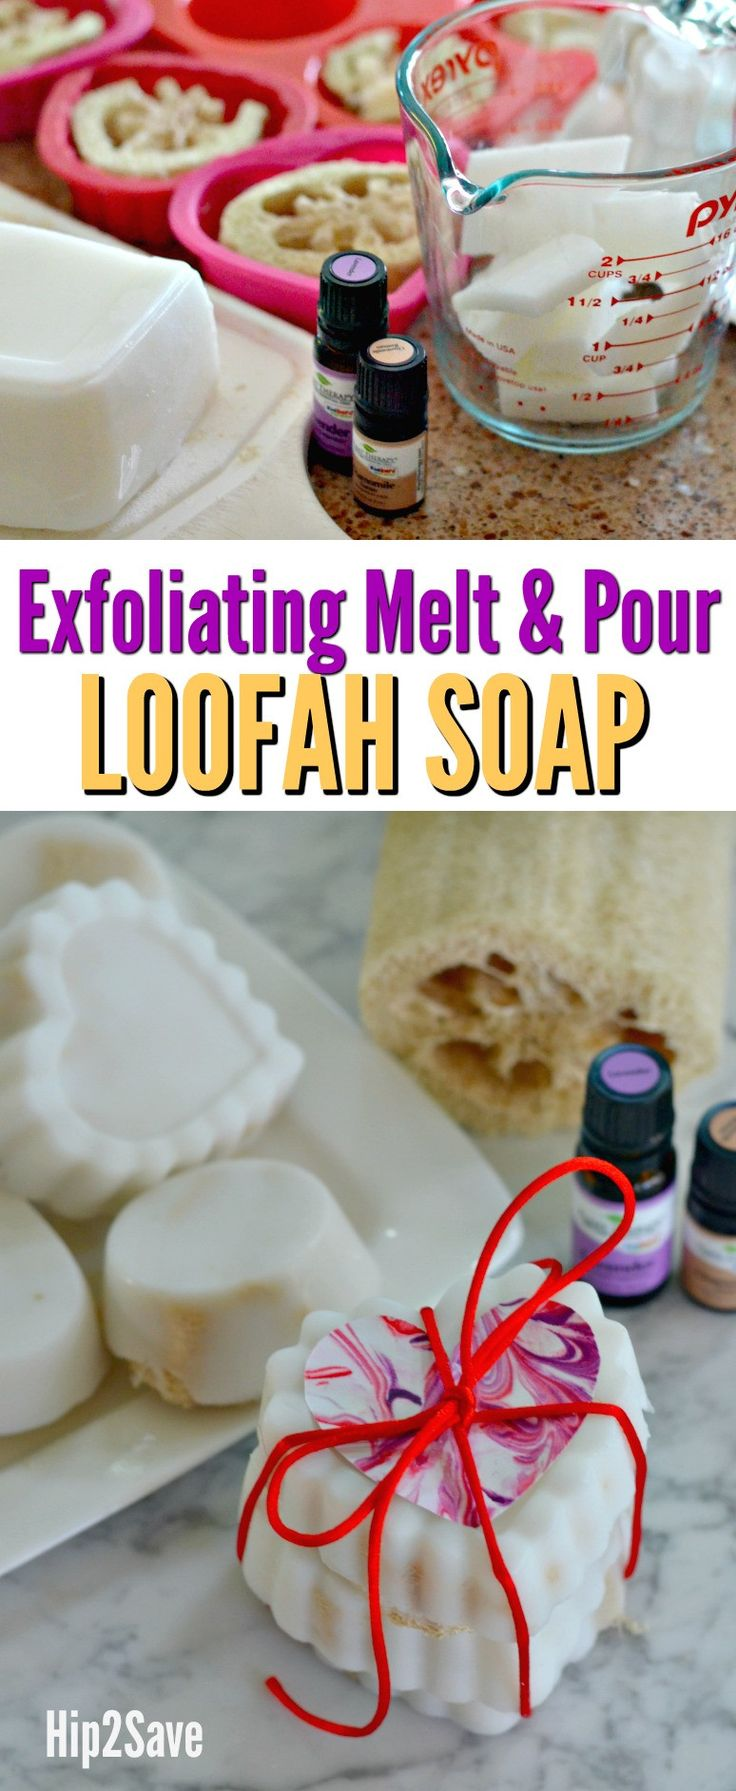 DIY Melt and Pour Exfoliating Loofah Soaps (Easier Than